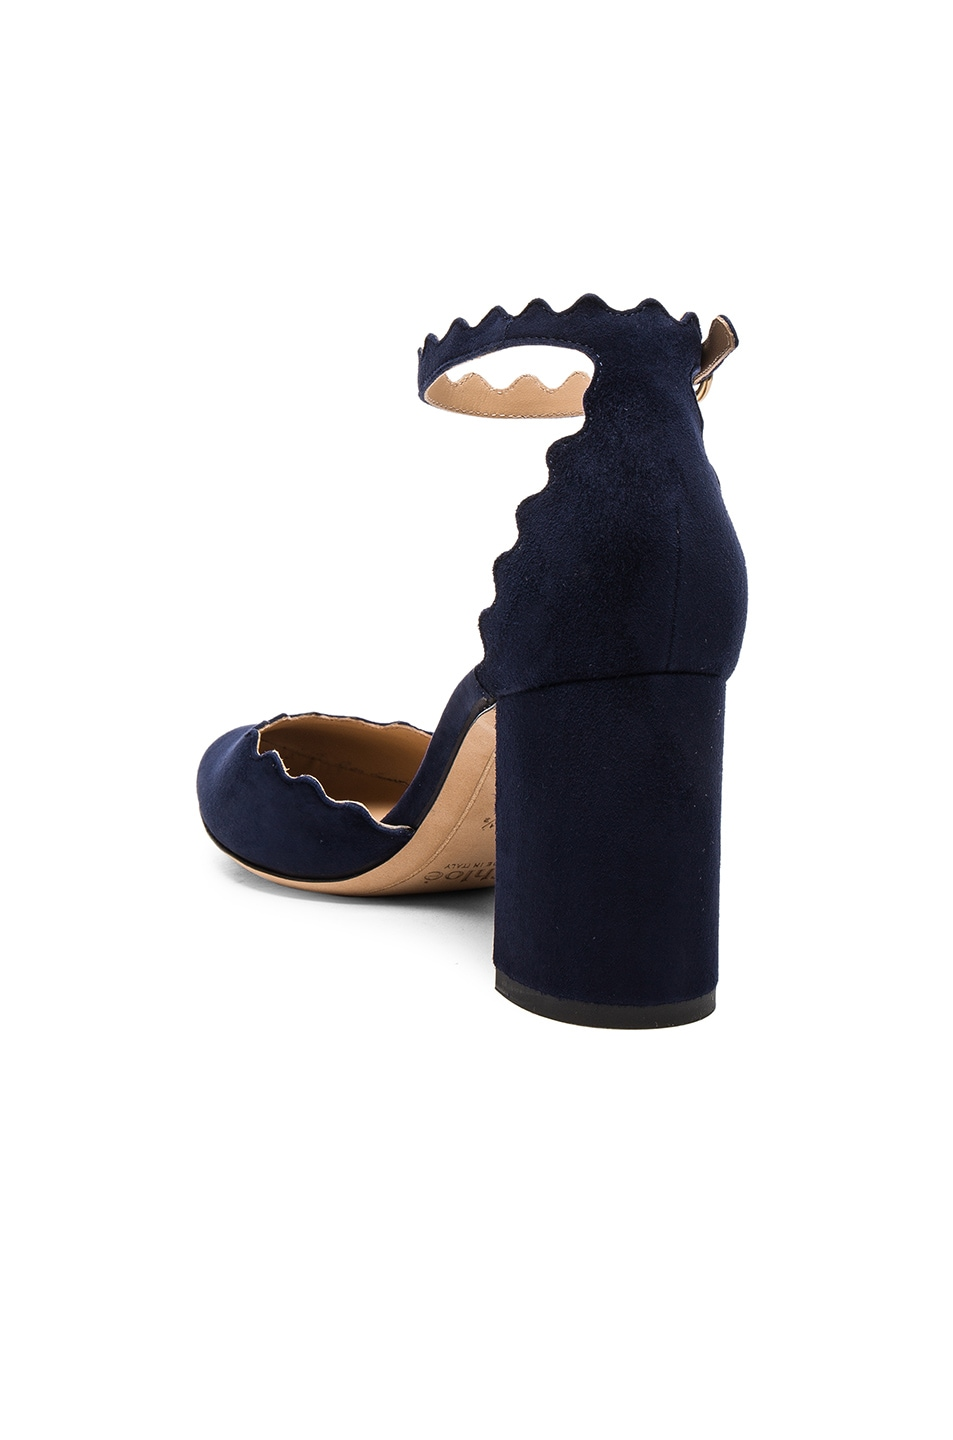 Image 3 of Chloe Suede Lauren Ballerina Pumps in Blue Lagoon